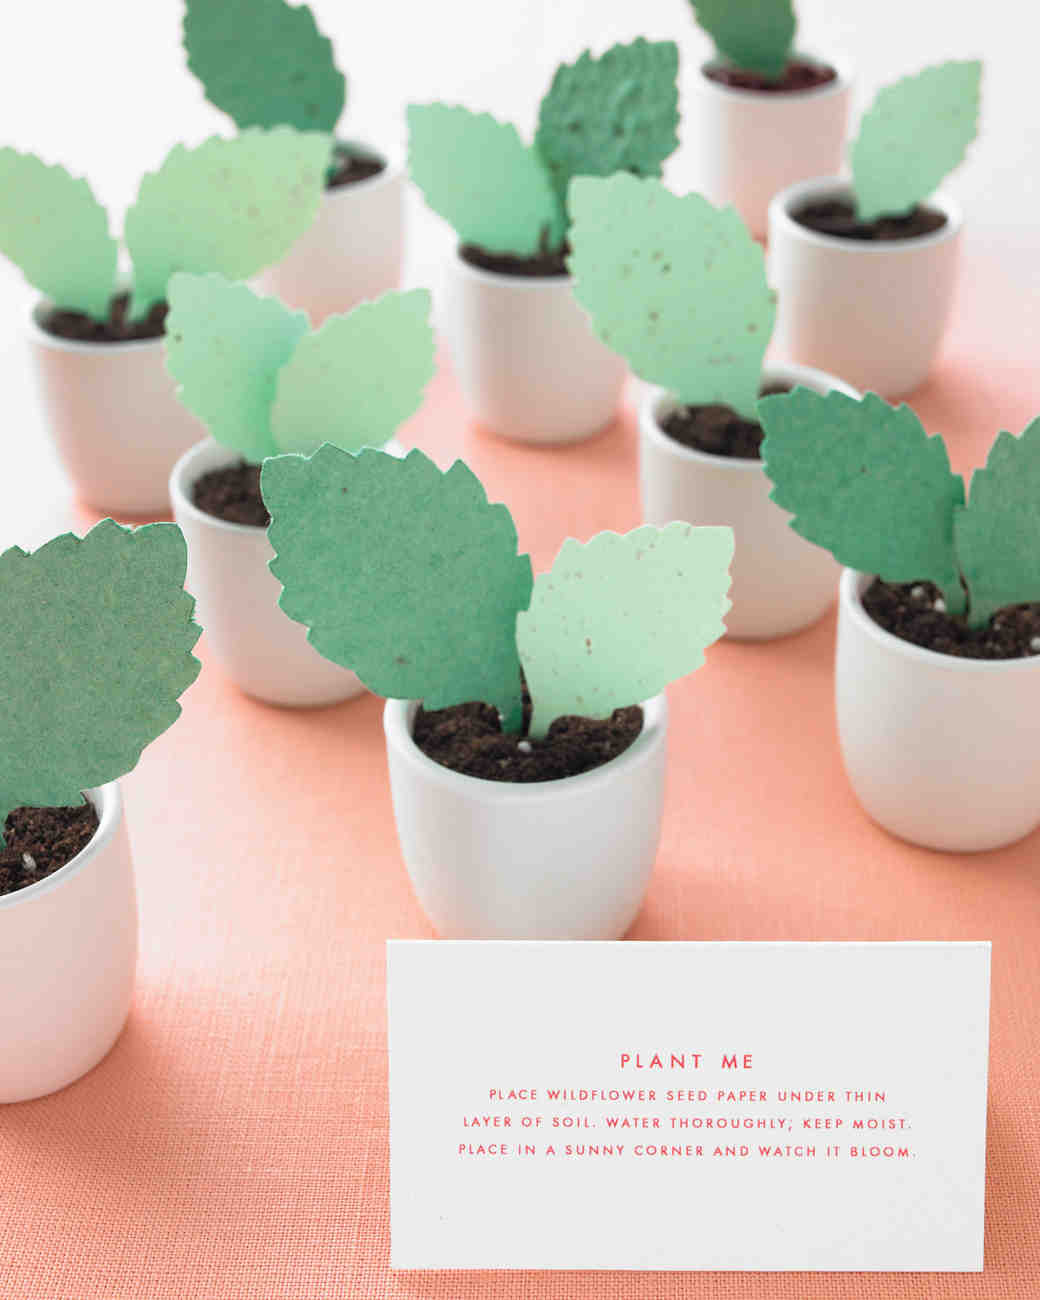 diy-floral-favors-seeds-in-soil-sp10-0615.jpg